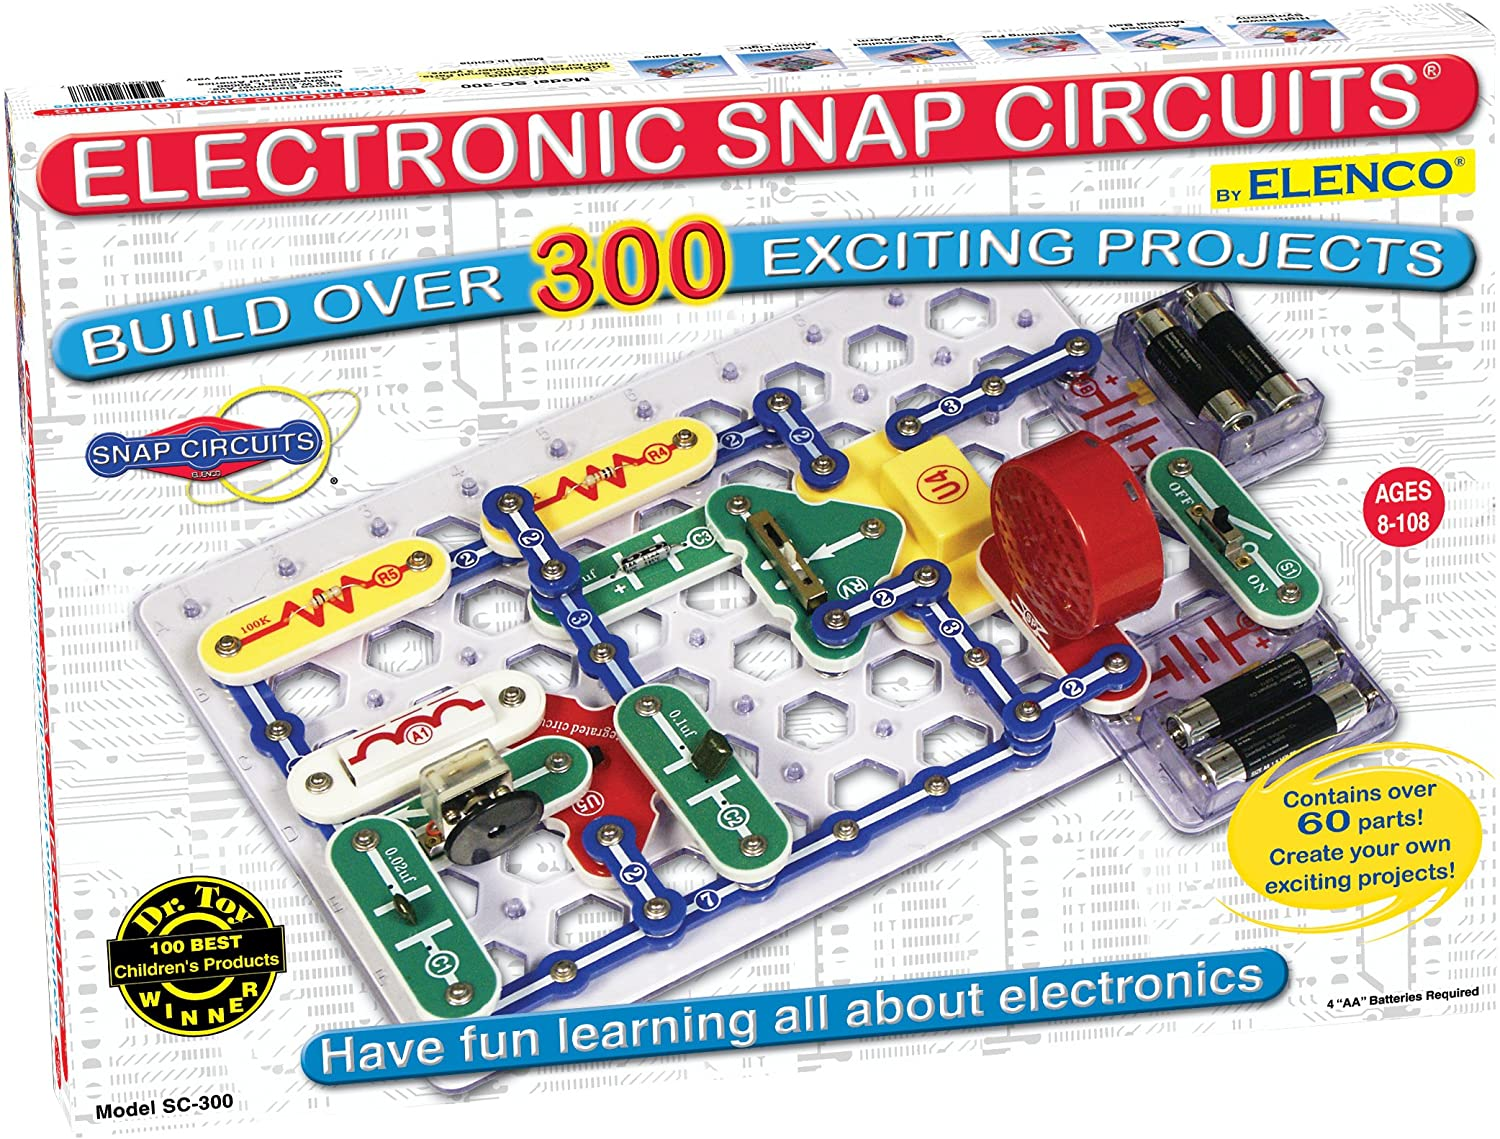 Snap Circuits Classic SC-300 Electronics Exploration Kit | Over 300 Projects | Full Color Project Manual | 60+ Snap Circuits Parts | STEM Educational Toy for Kids 8+,Black,2.3 x 13.6 x 19.3 inches: Toys & Games